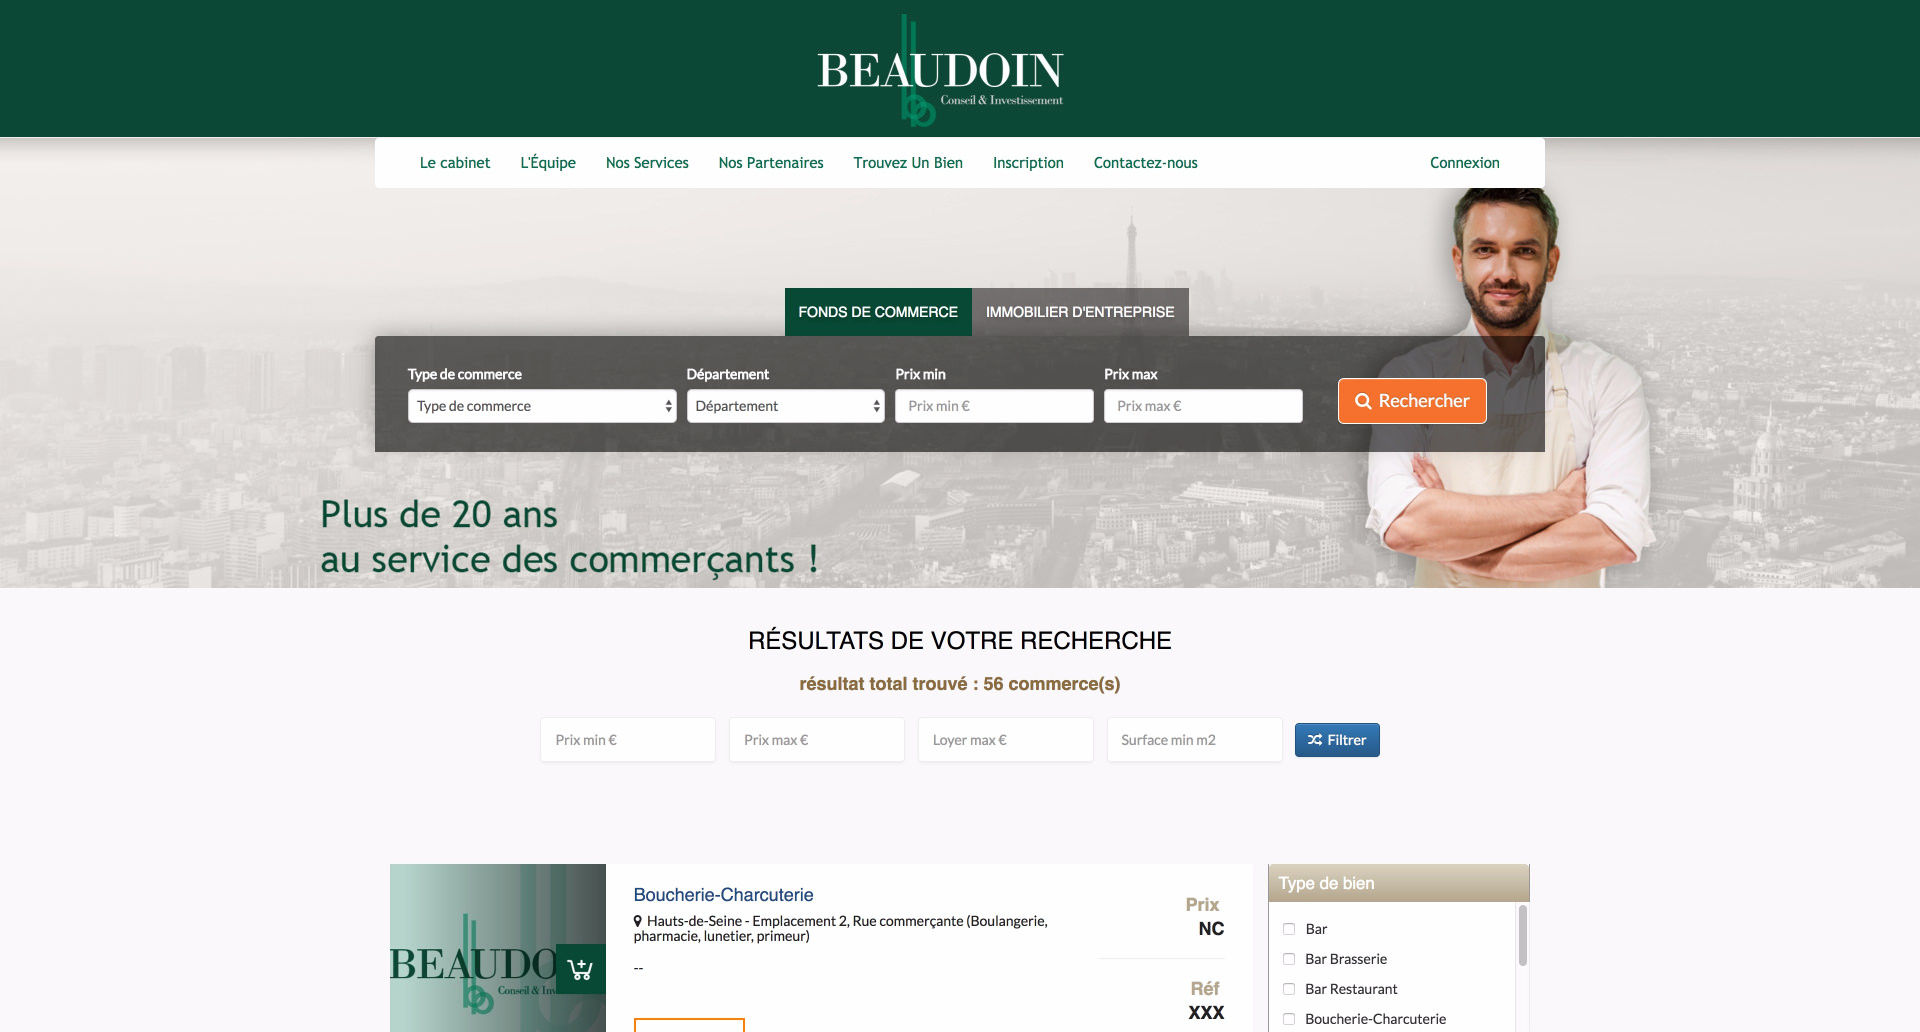 site internet Beaudoin Immobilier - Cabinet d'affaires transaction en fonds de commerce et Immobilier d'entreprise